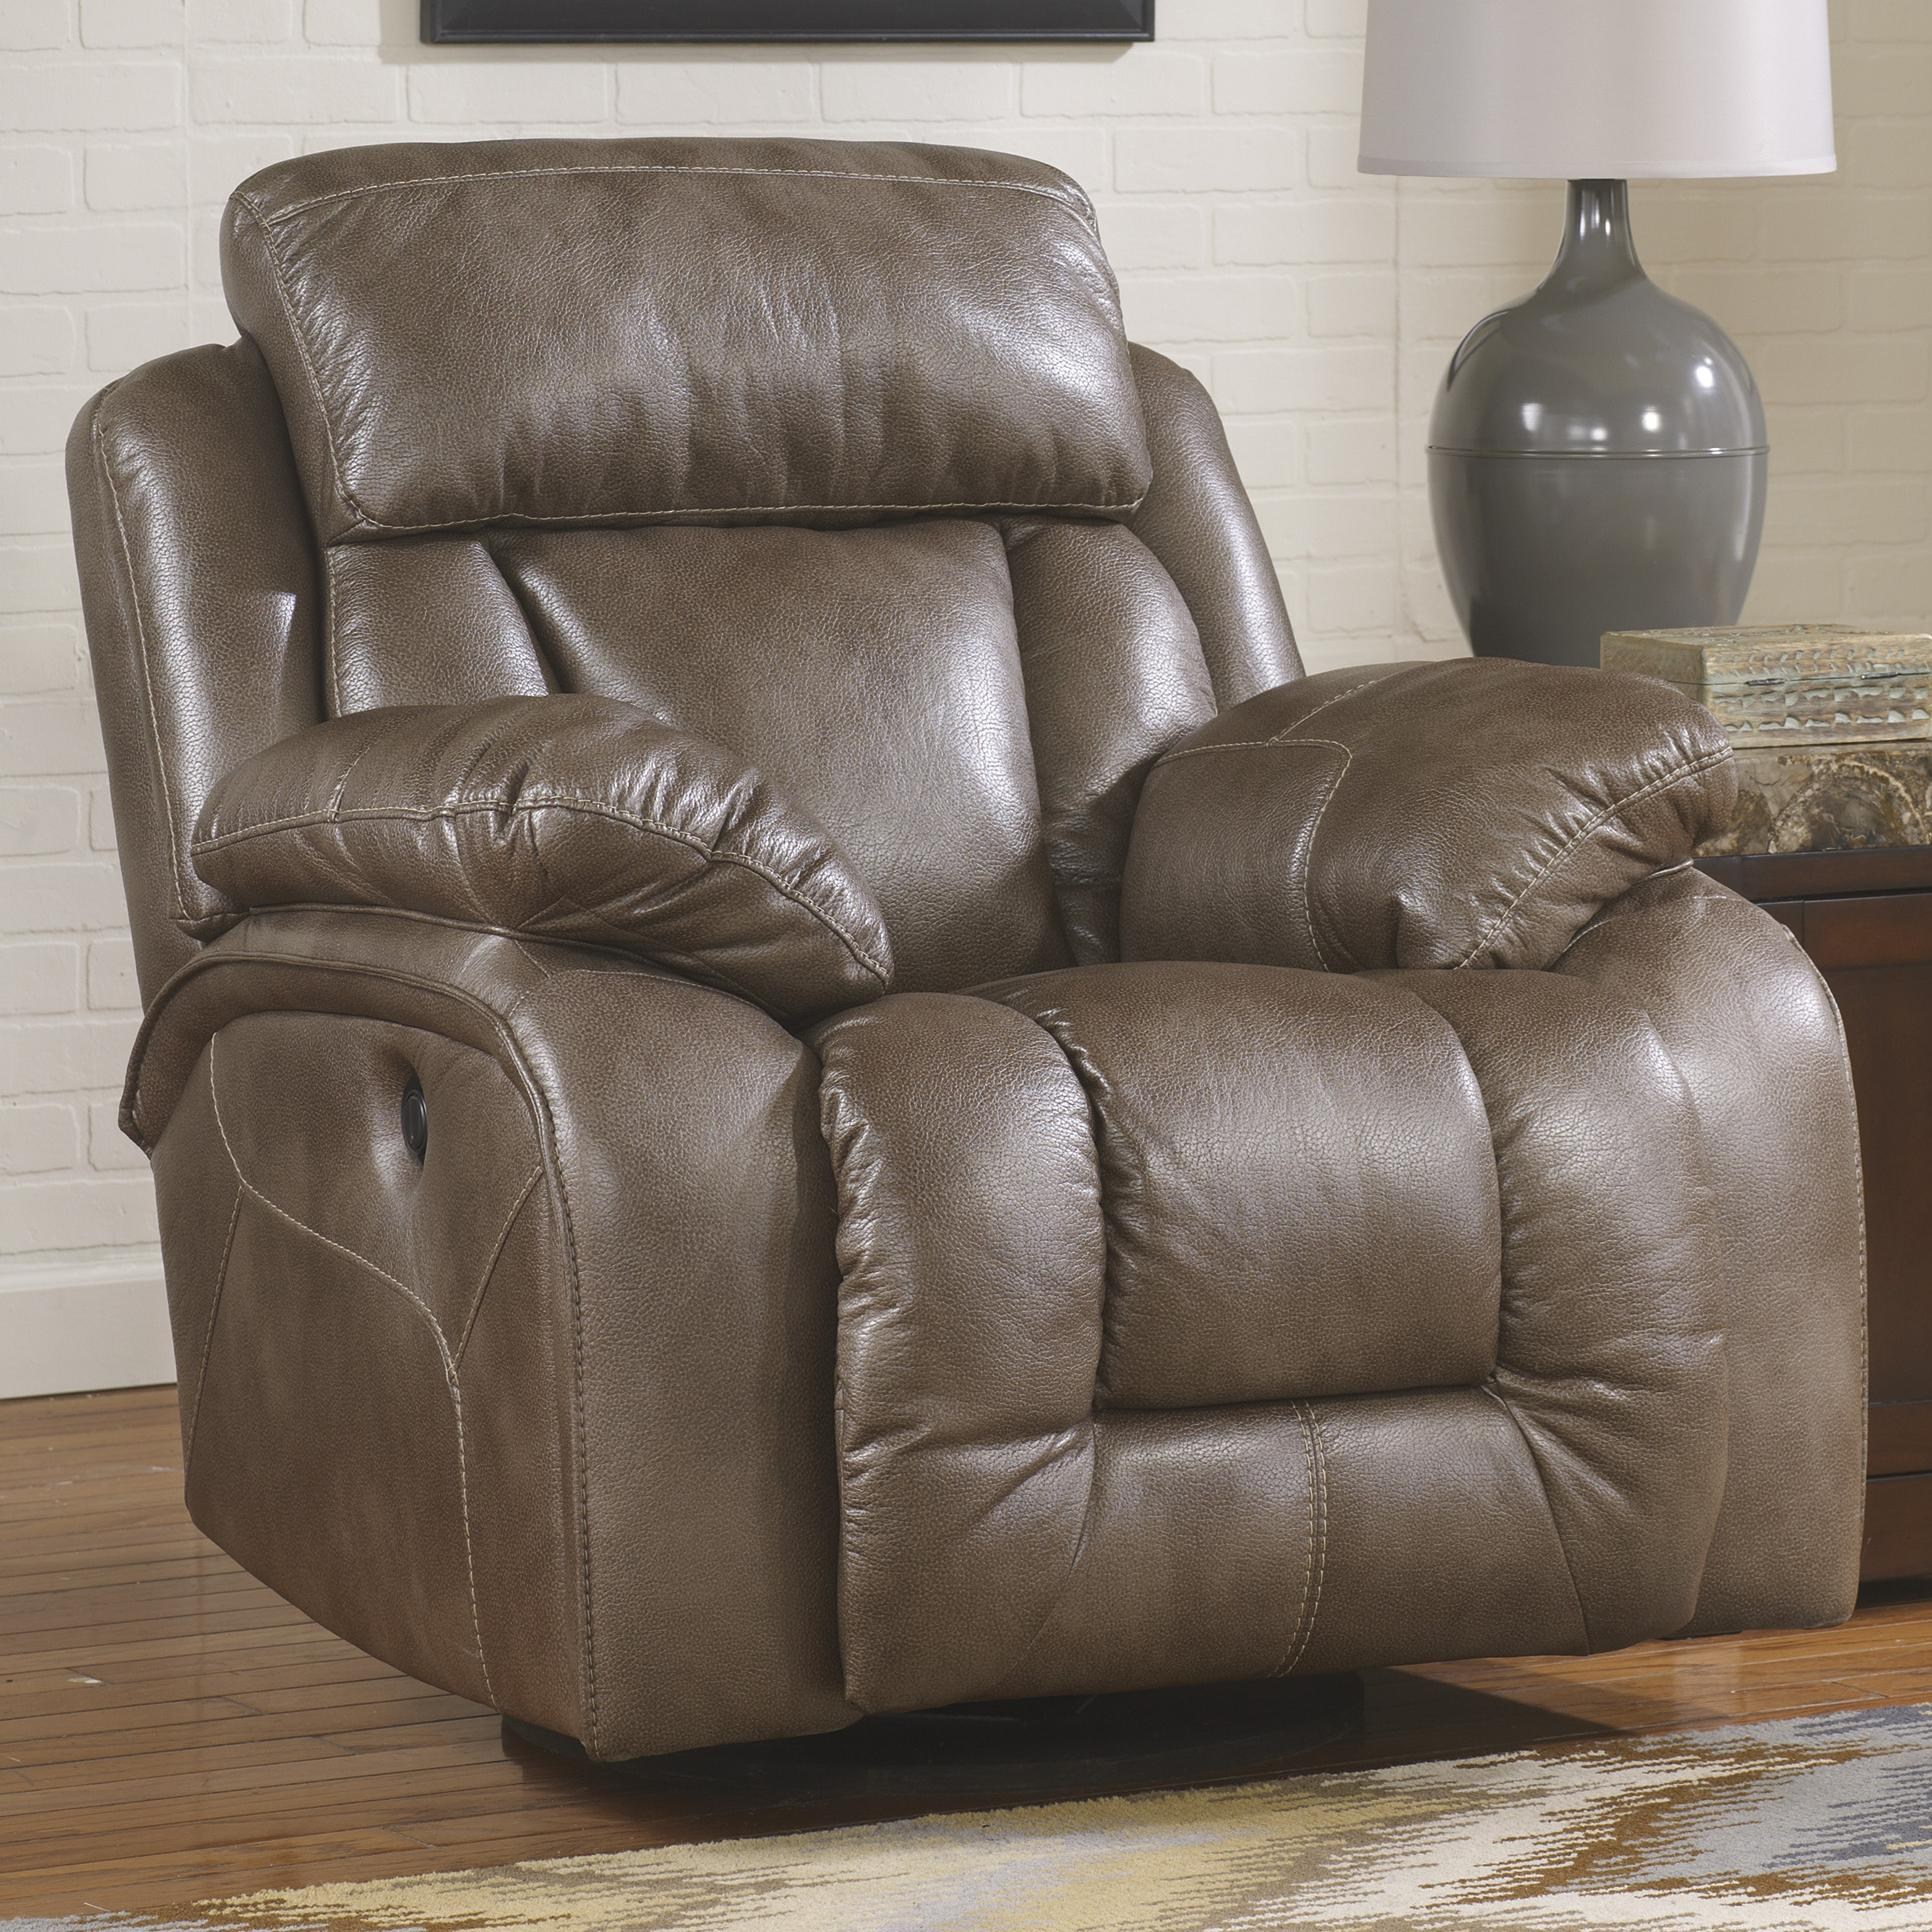 Ashley Furniture Loral - Sable Contemporary Faux Leather Swivel ...